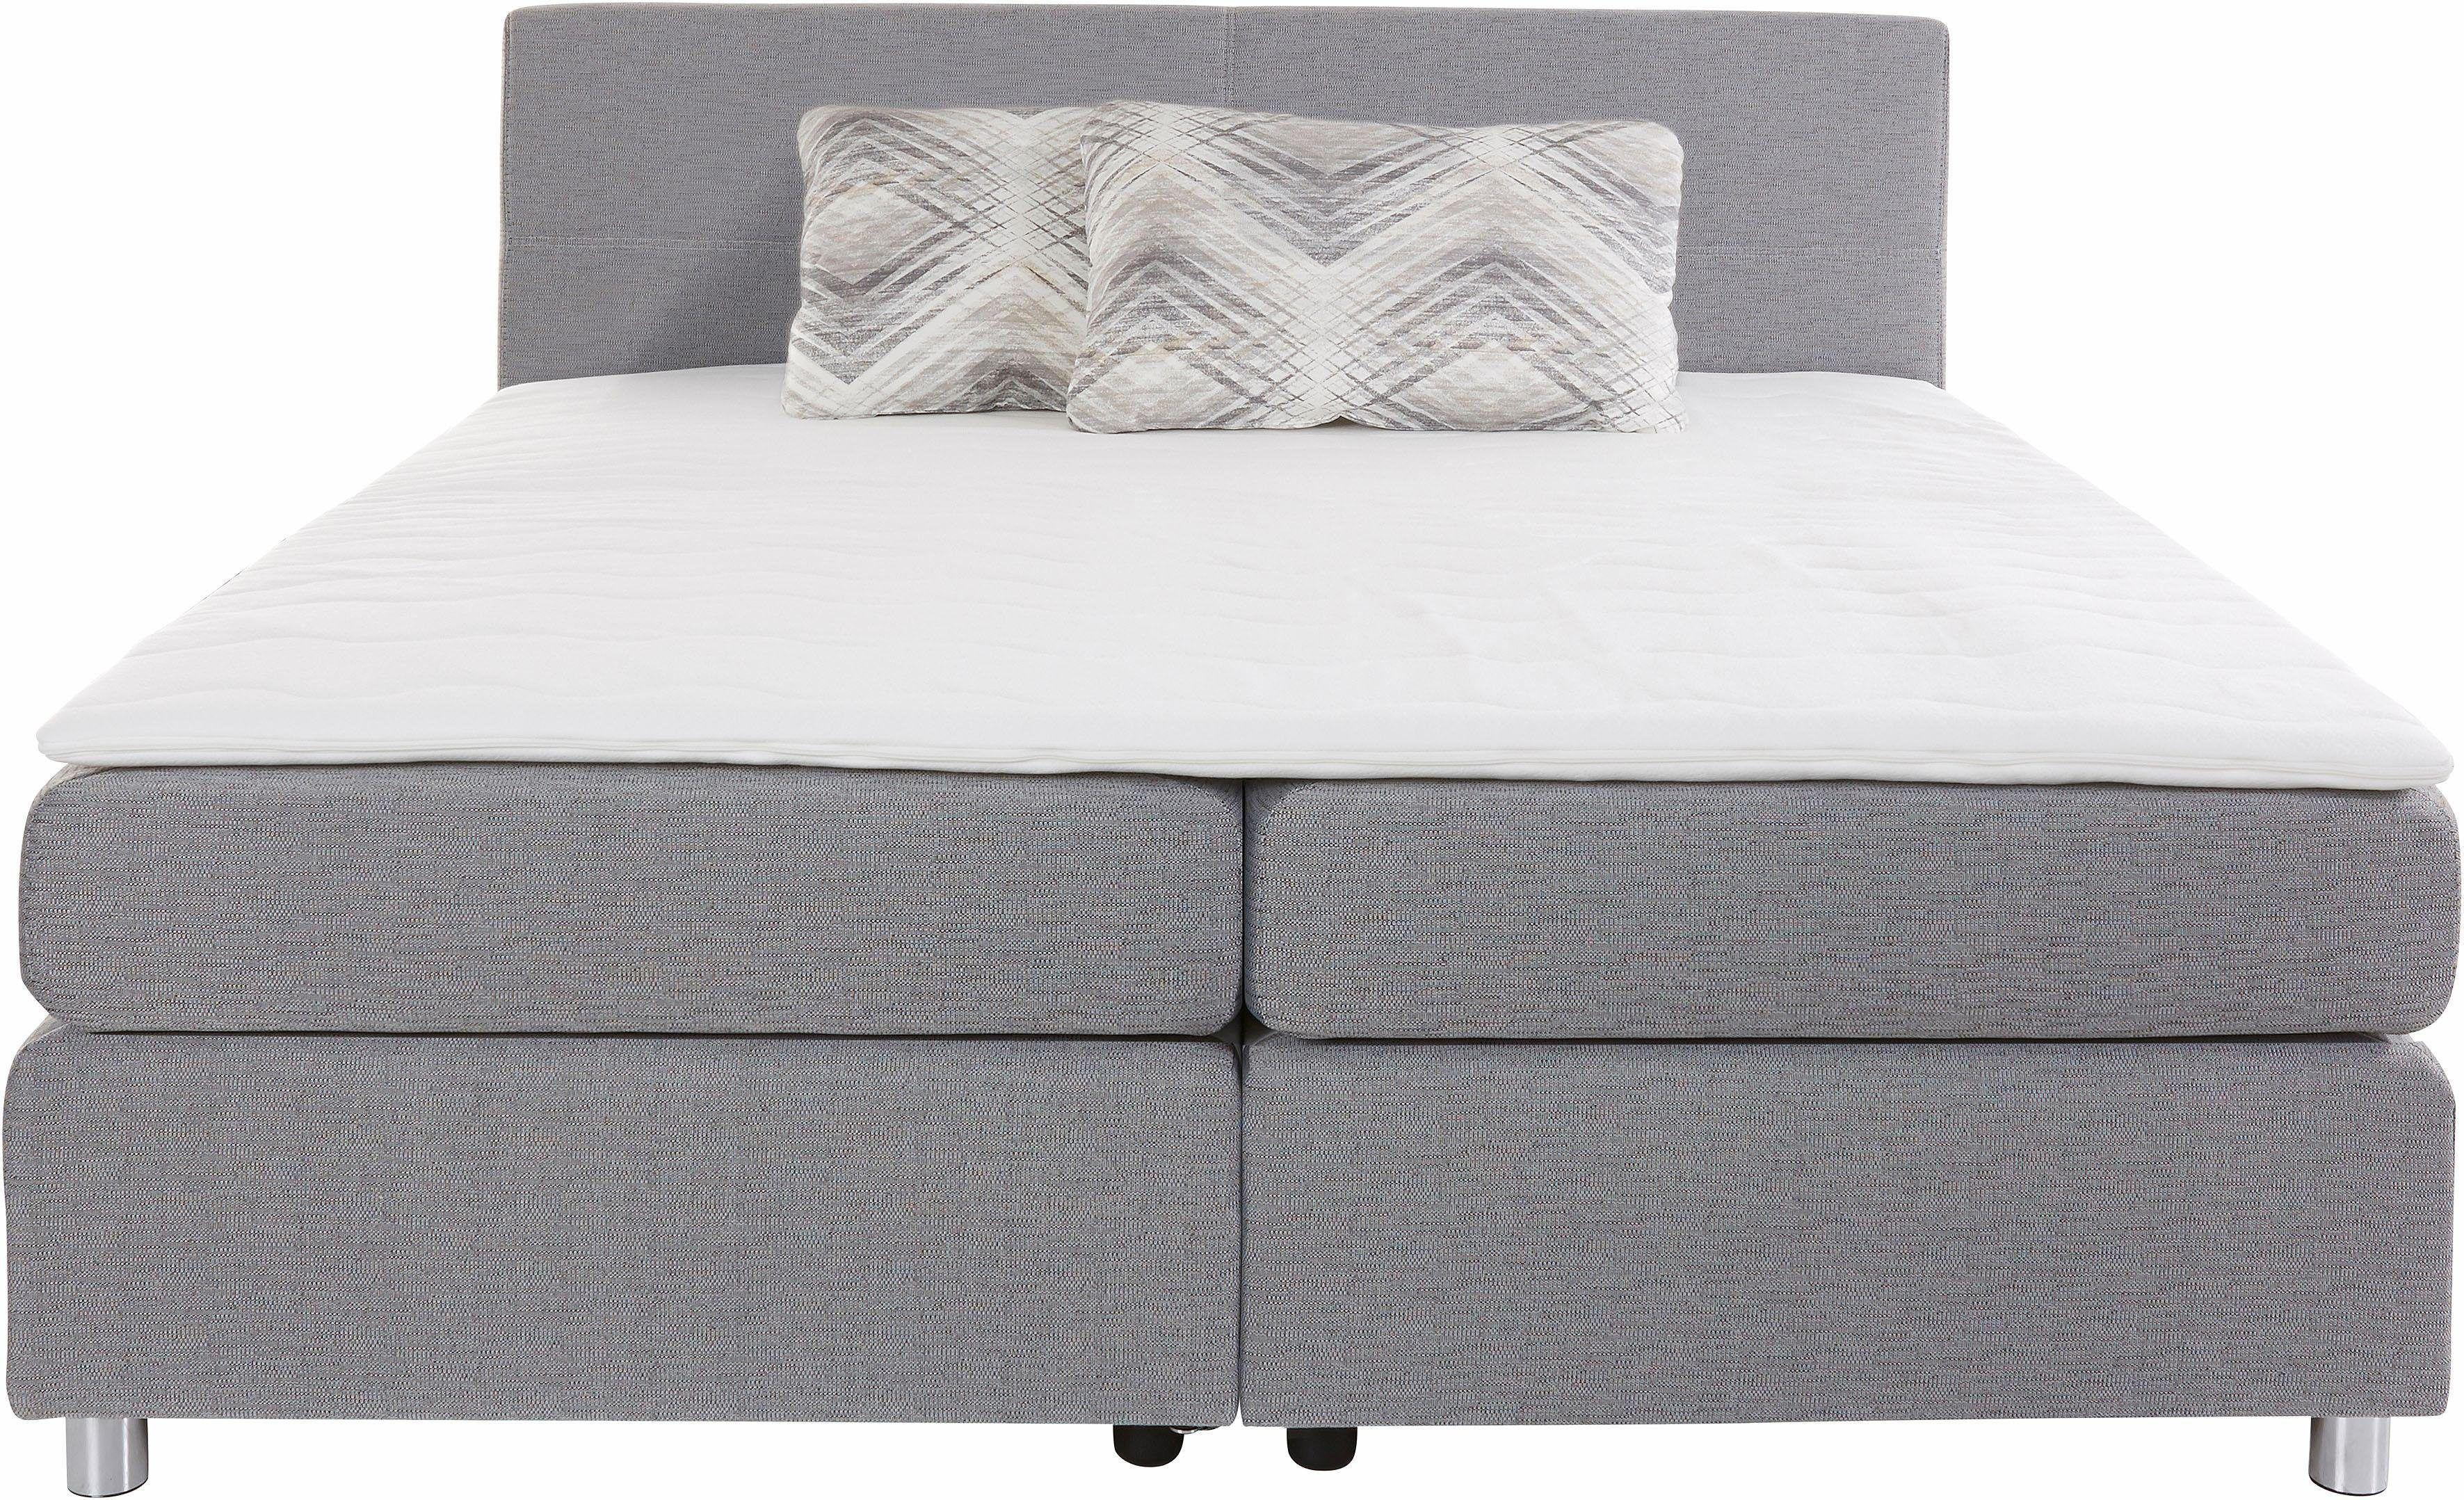 Boxspringbett Isa Test Pin By Ladendirekt On Betten Bed Furniture Home Decor